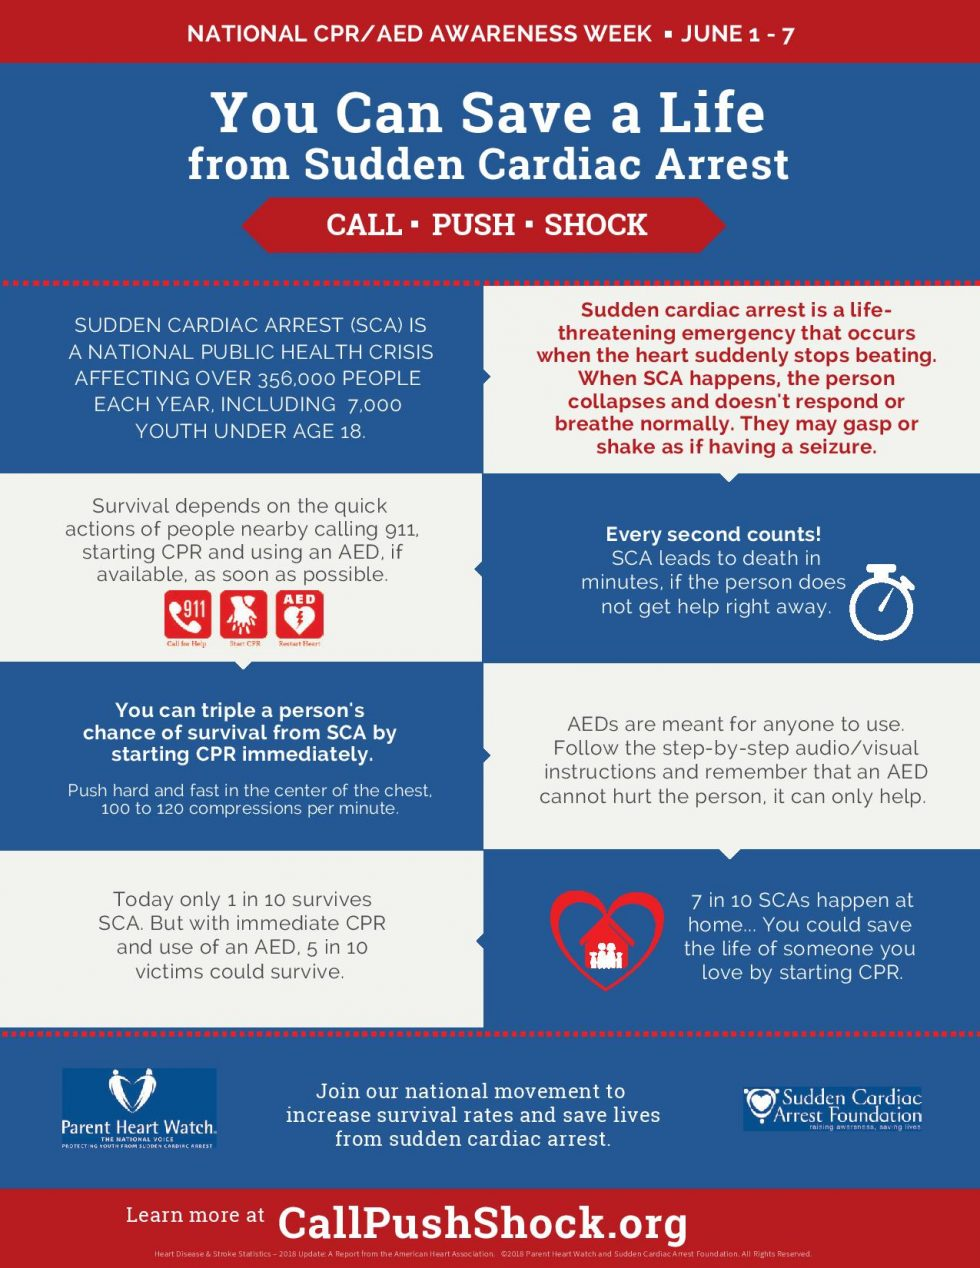 Saving a Life With #CallPushShock This CPR & AED Awareness Week - AED.US BLOG